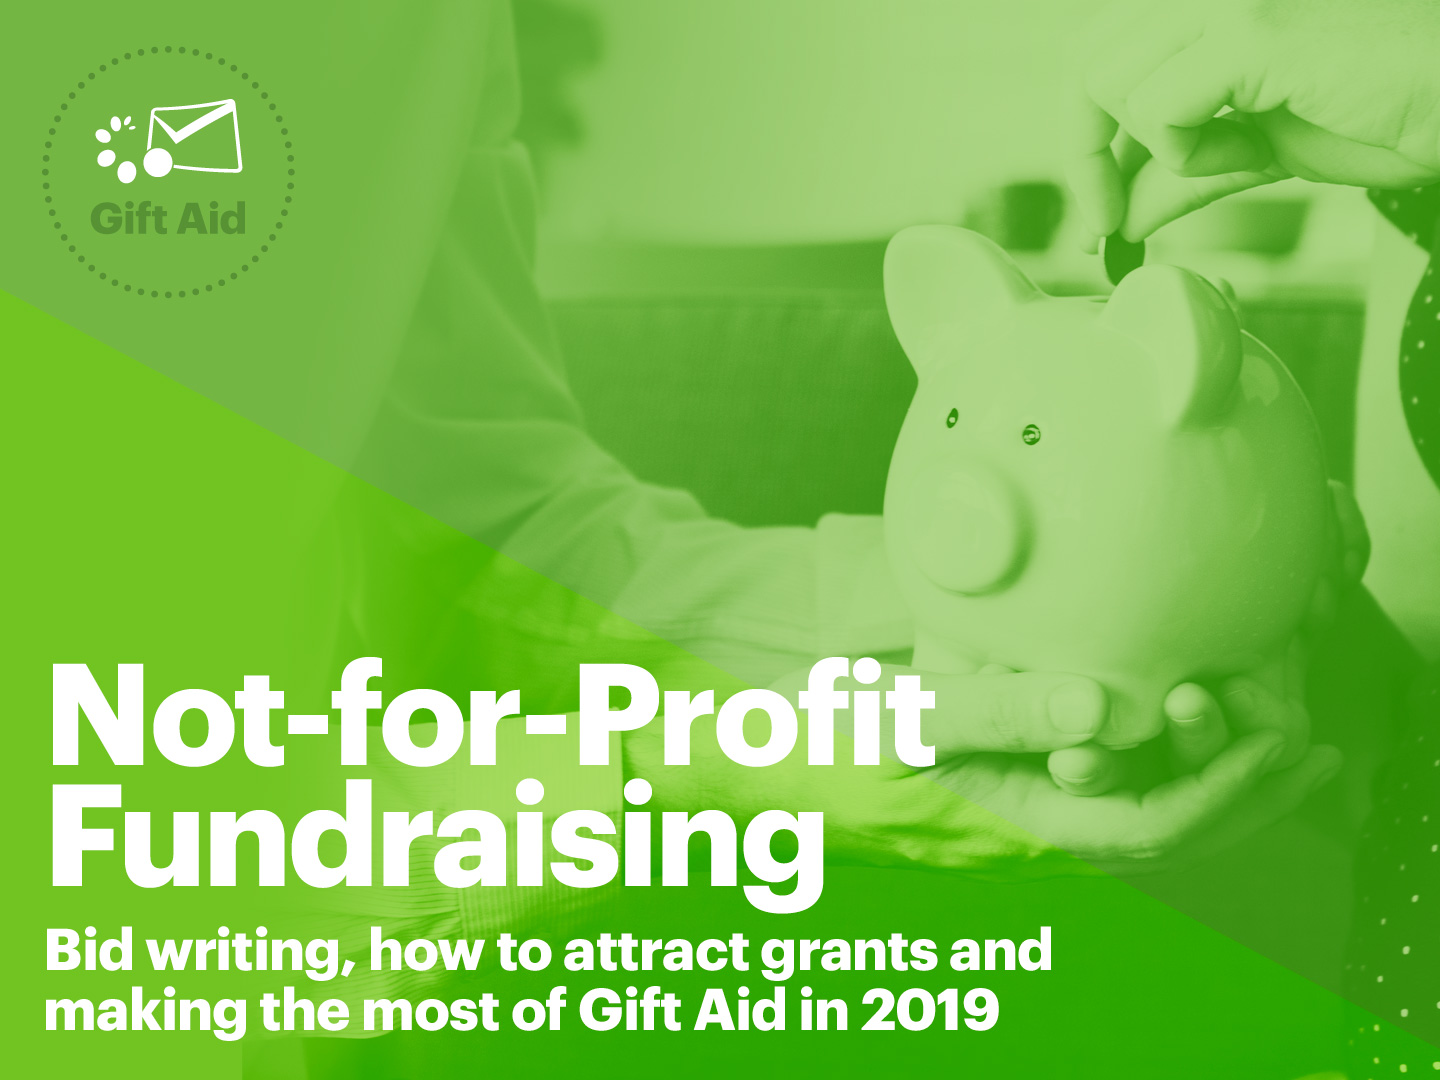 Not-for-profit Fundraising Seminar, Saturday 3rd August, London. Bid writing, grants and making the most of Gift Aid in 2019